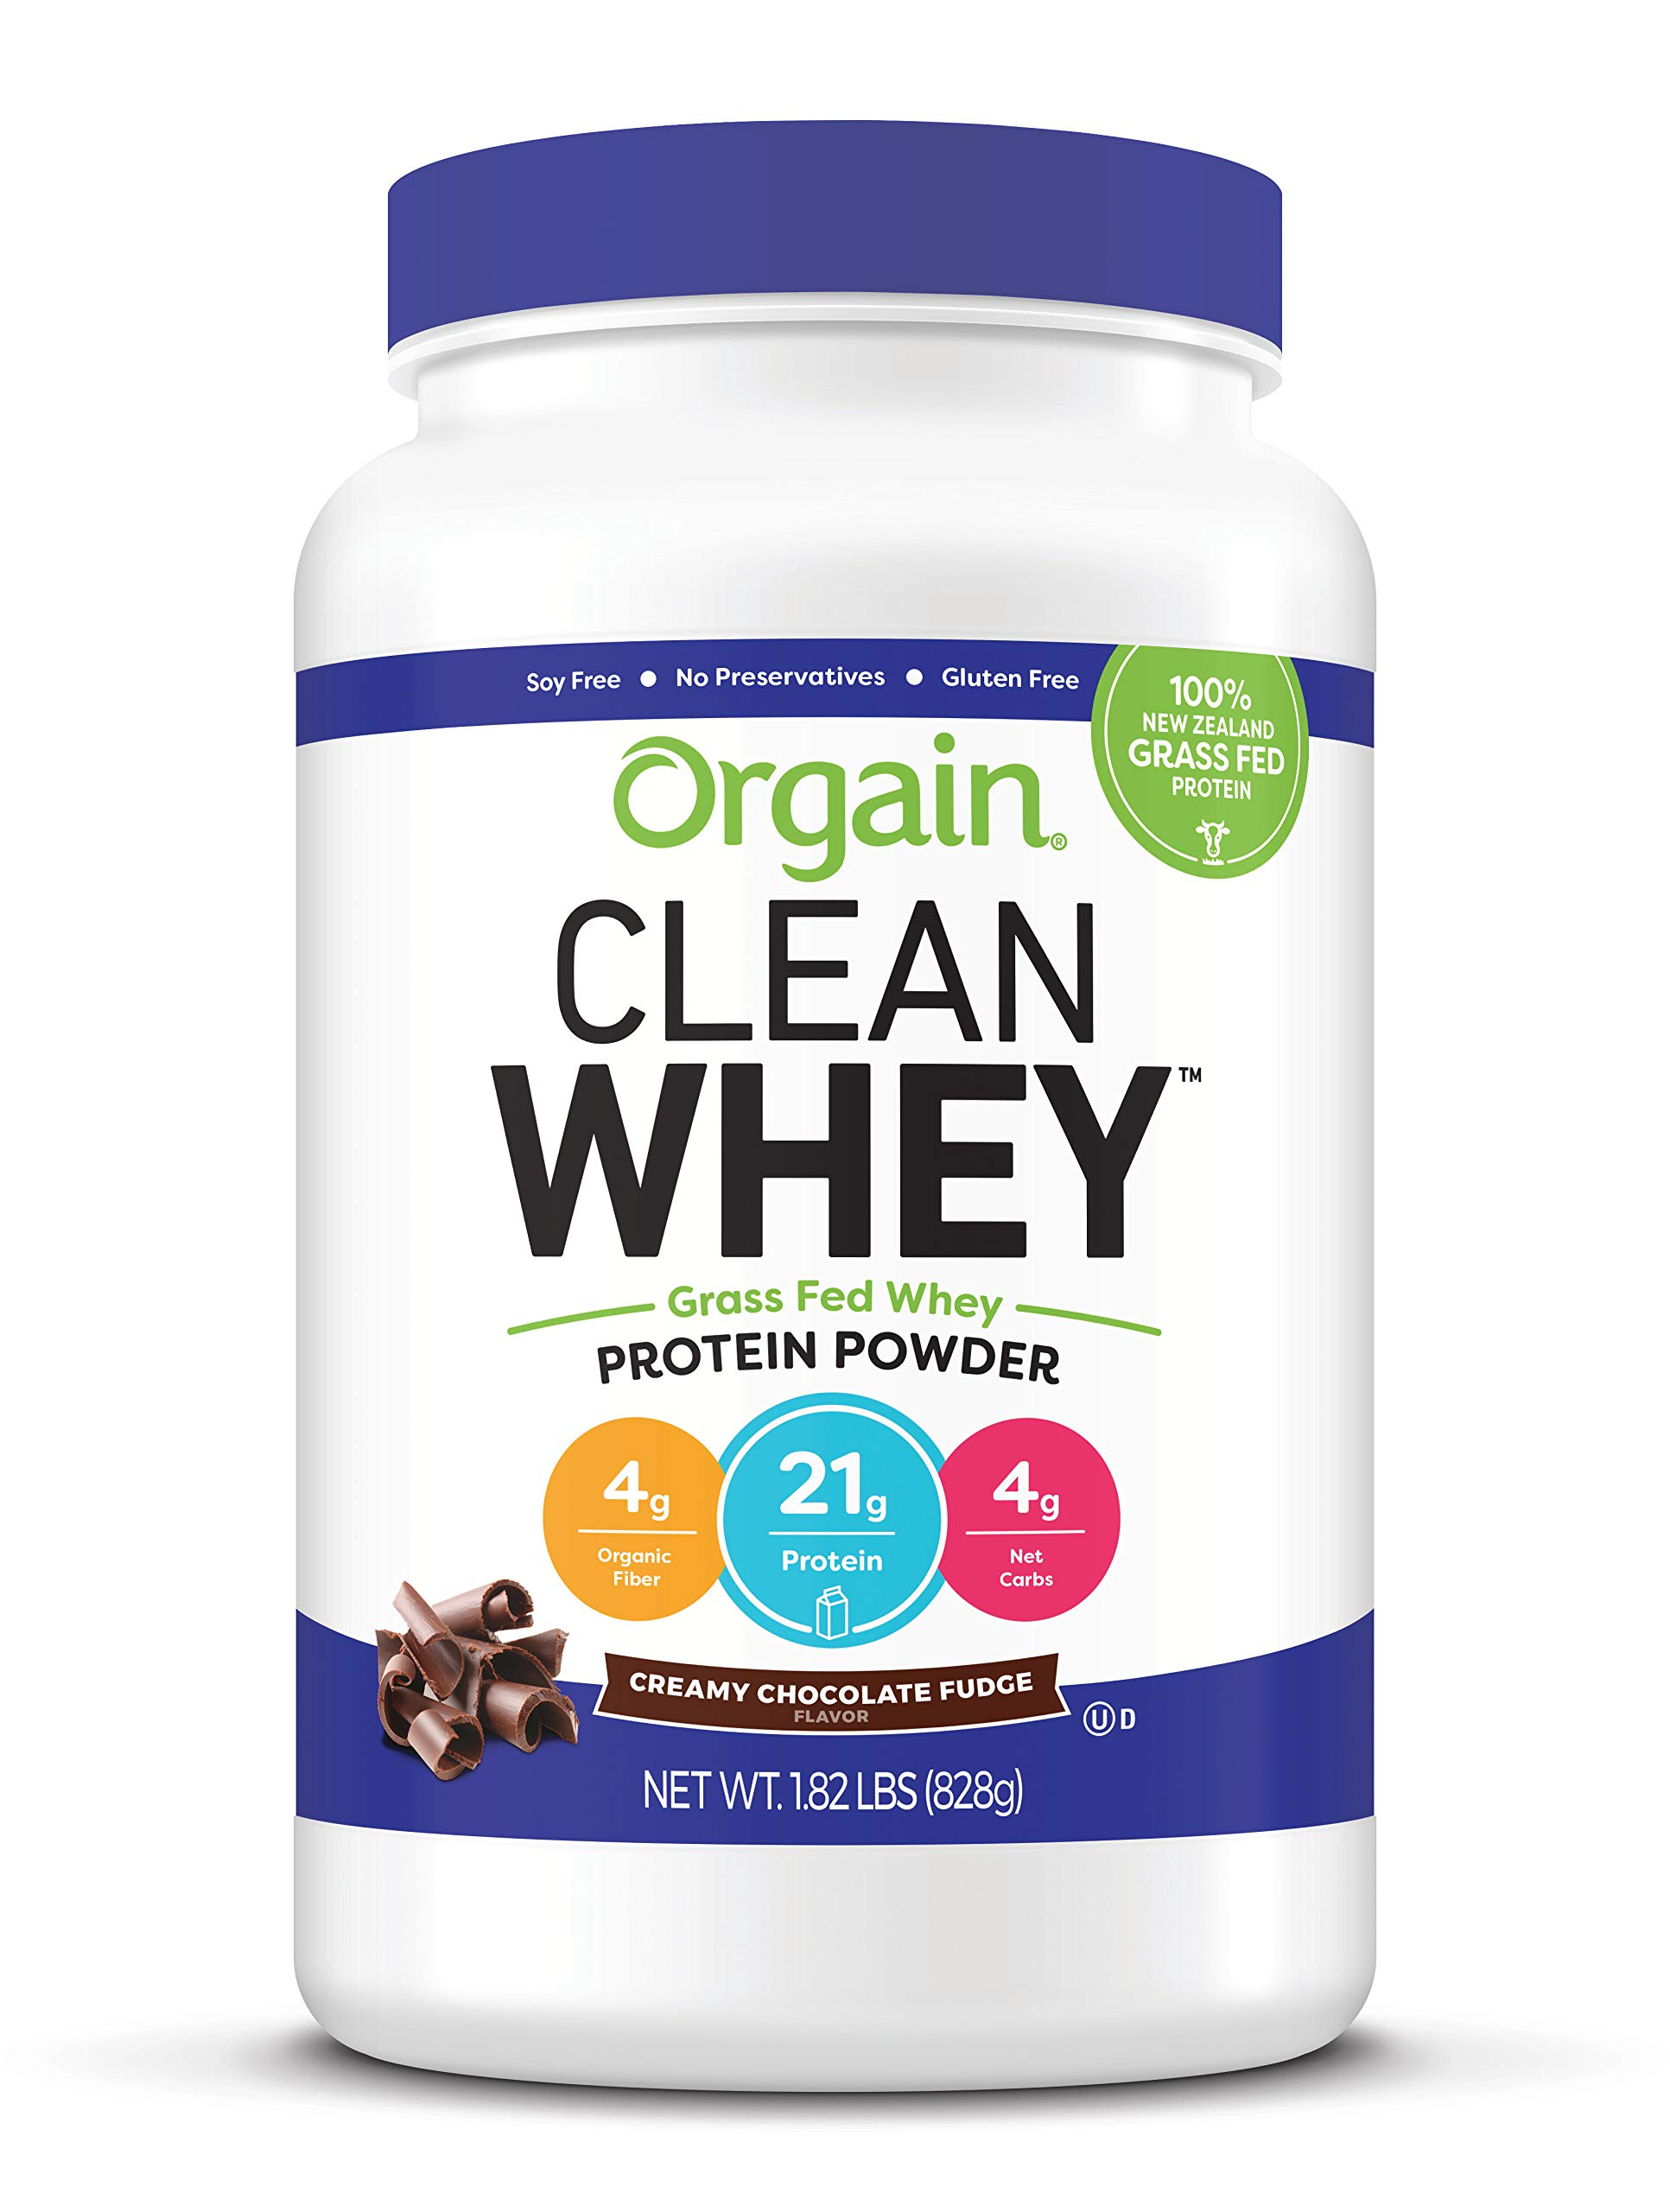 Orgain Grass Fed Clean Whey Protein Powder, Creamy Chocolate Fudge - Low Net Carbs, Gluten Free, Soy Free, No Sugar Added, Kosher, Non-GMO, 1.82 Pound by Orgain